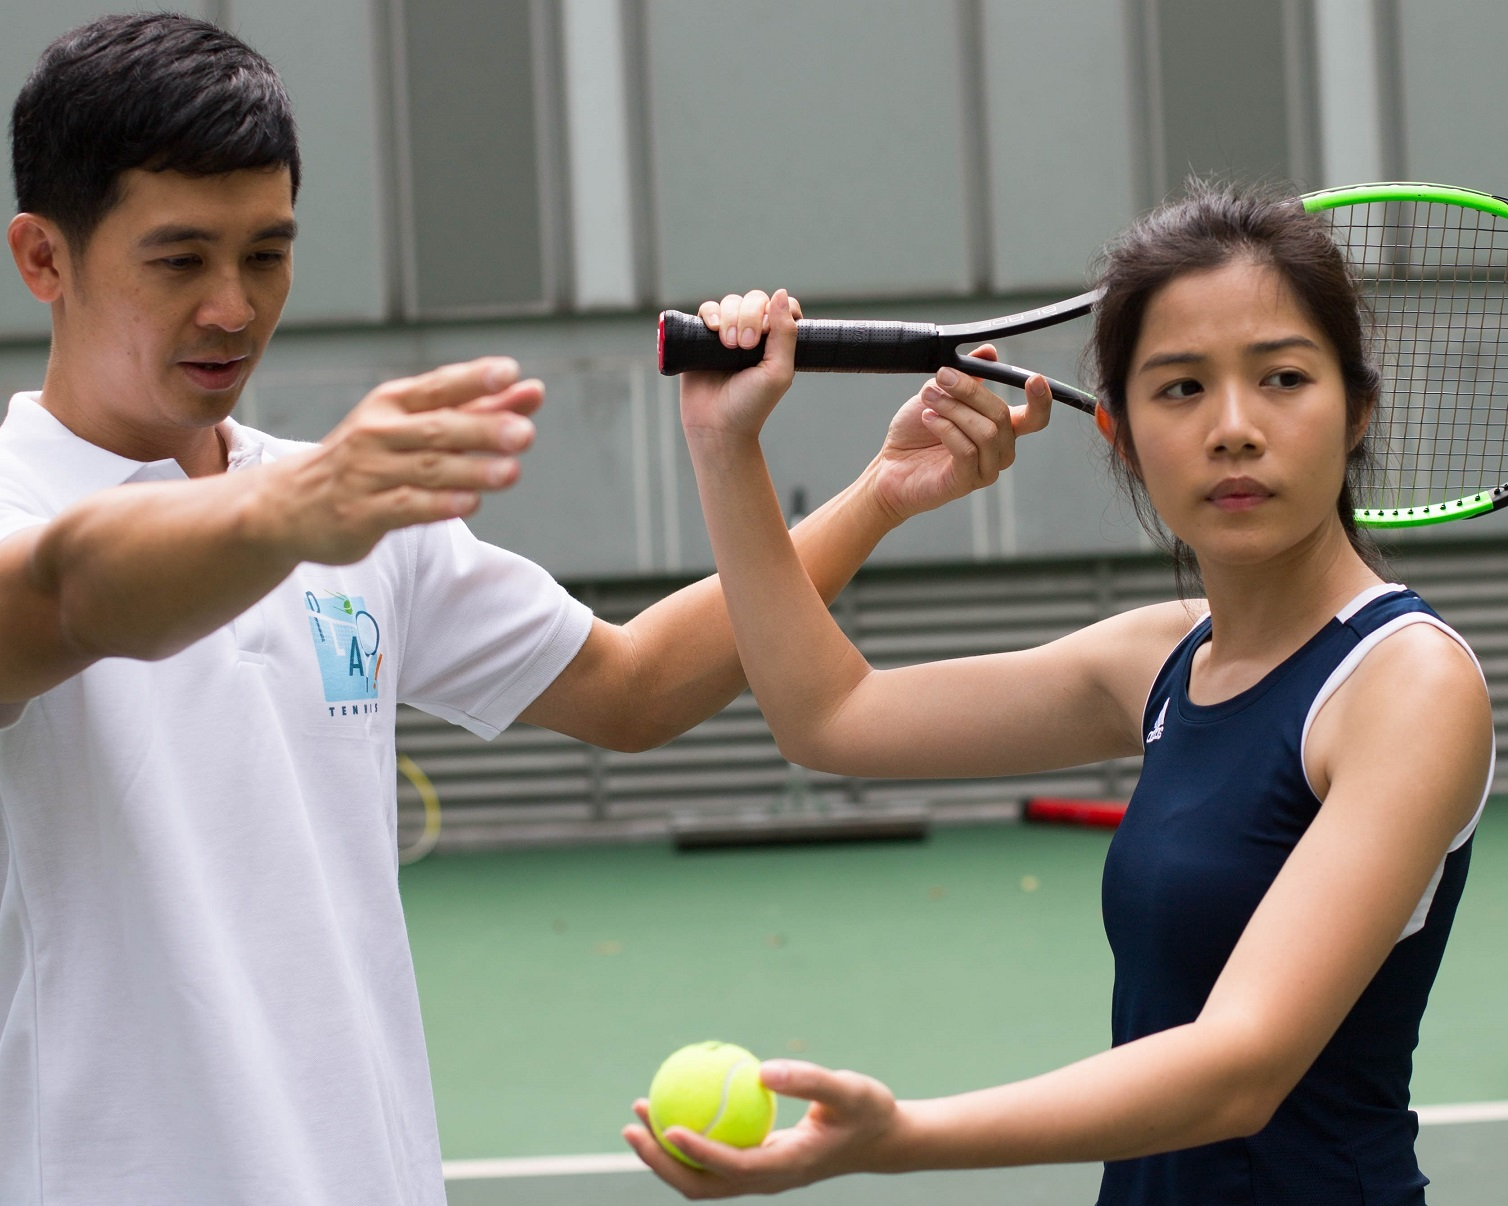 Tennis Lessons Singapore Private